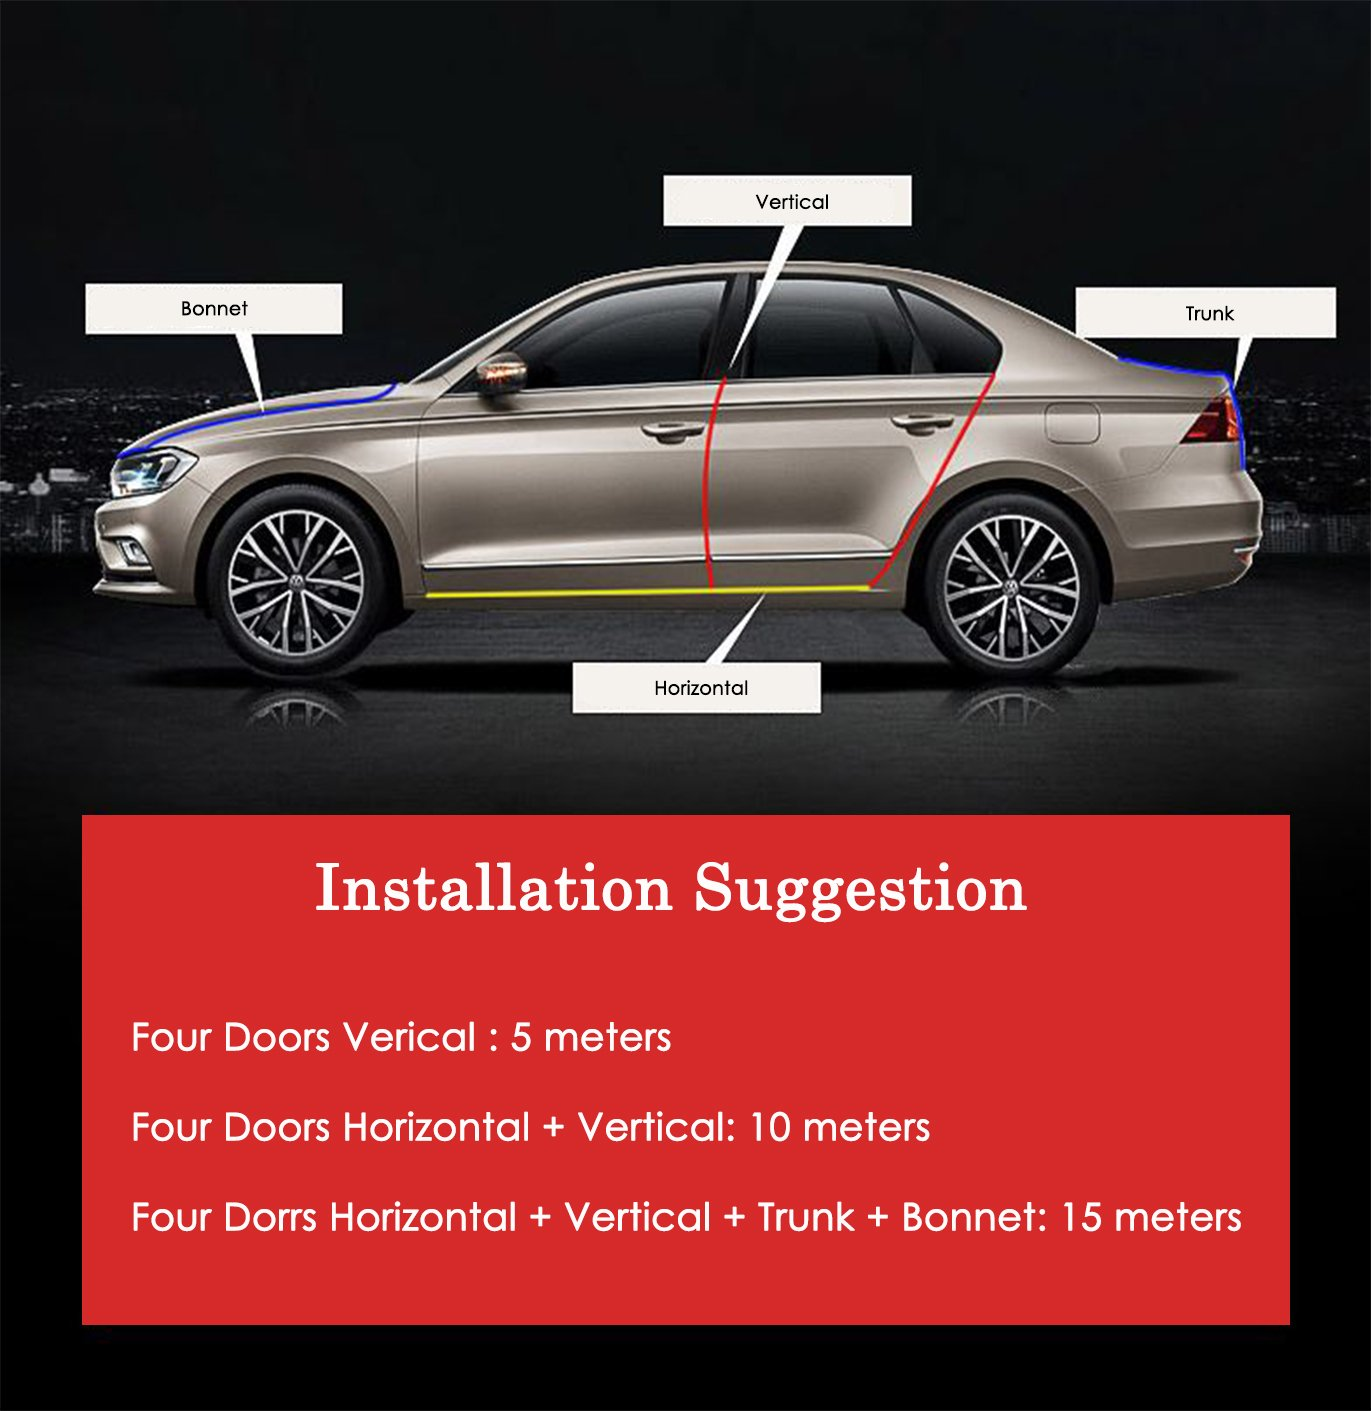 Eximone 【No adhesives required】 3D Car Door Edge Seal Guard Protector U-Shape with Steel Sheet for Car SUV Vehicles 16Ft 5M